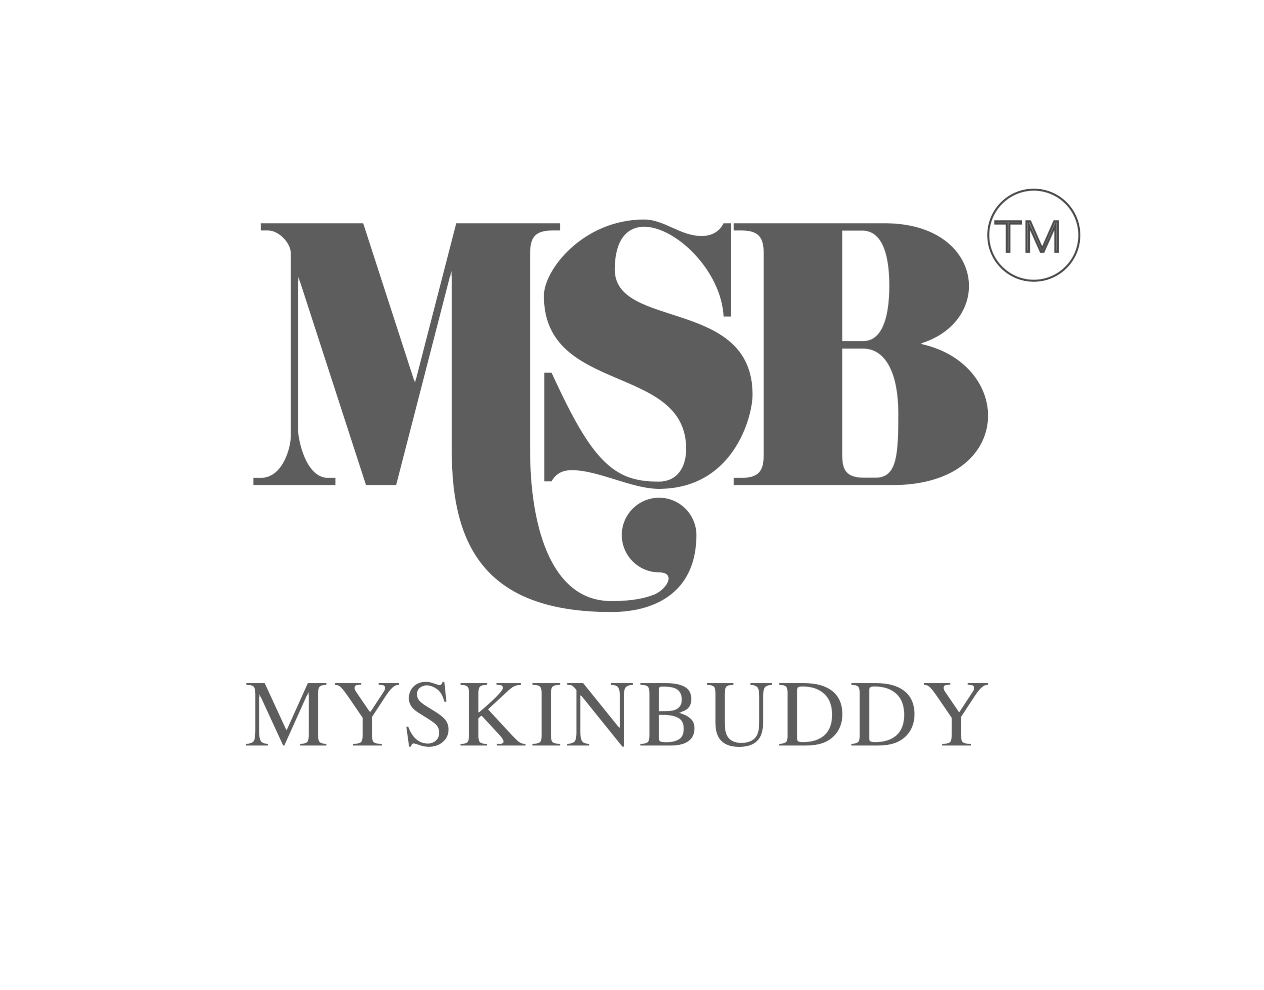 MYSKINBUDDY TM